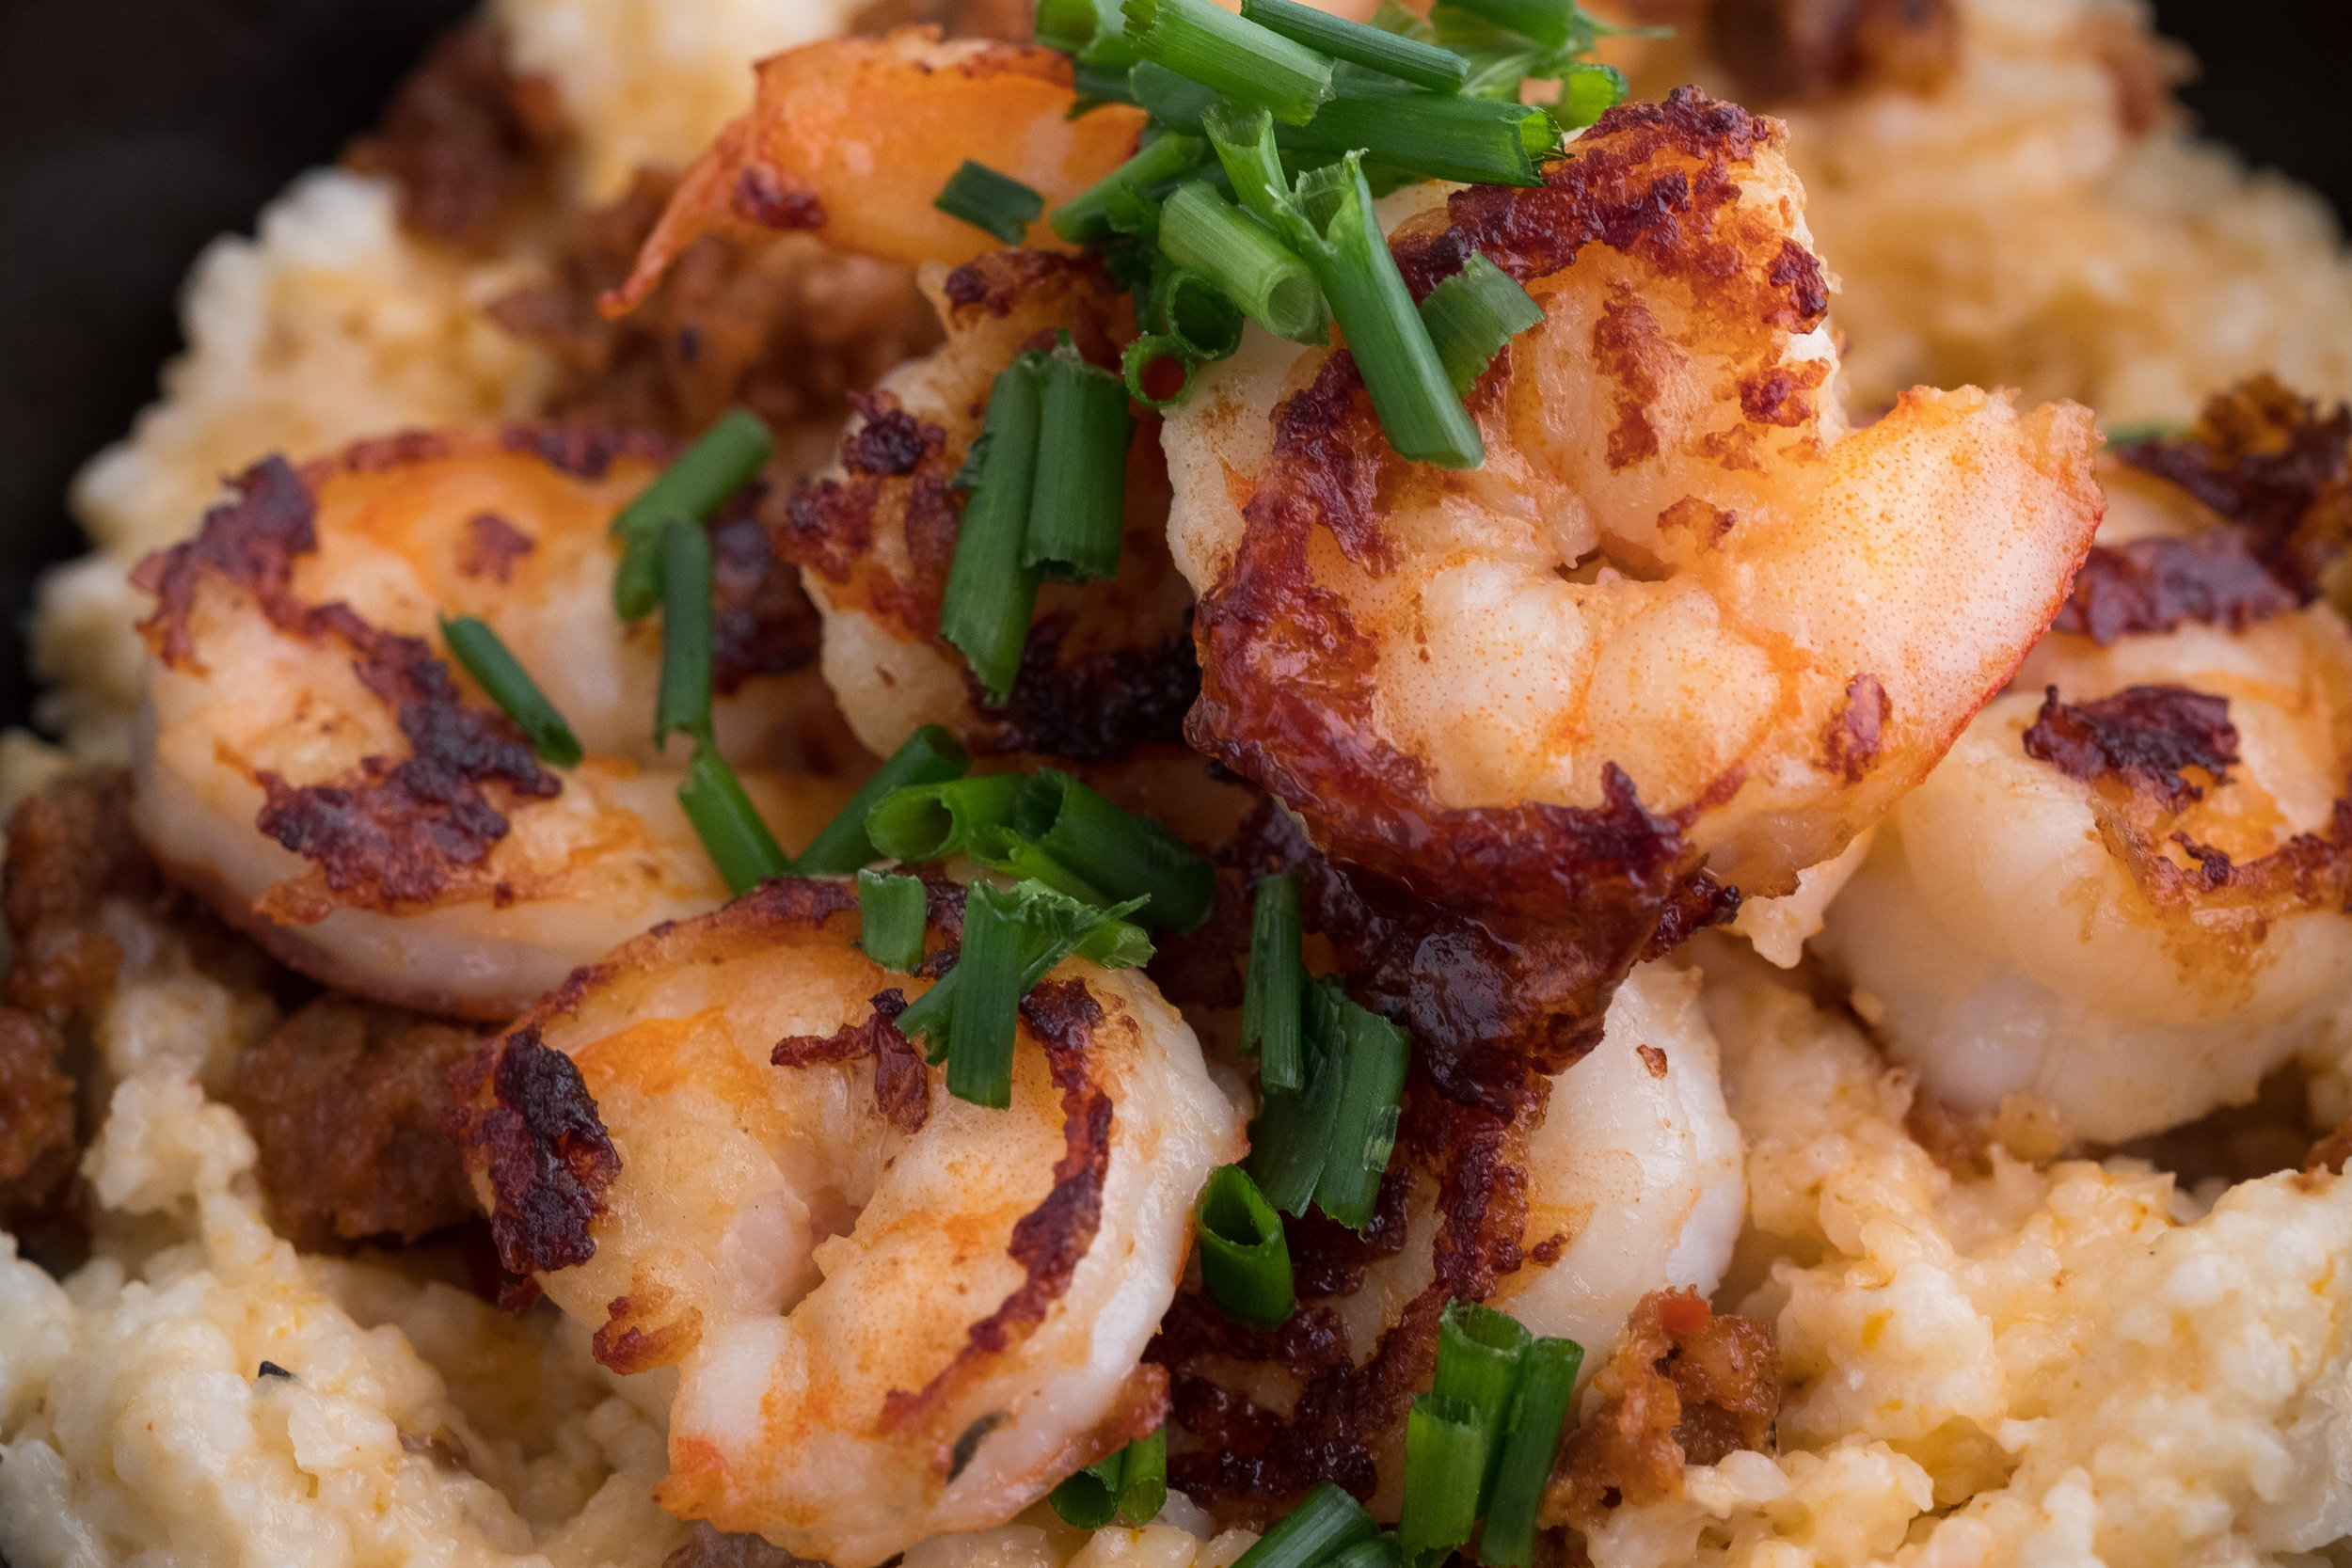 Shrimp and grits_.jpg